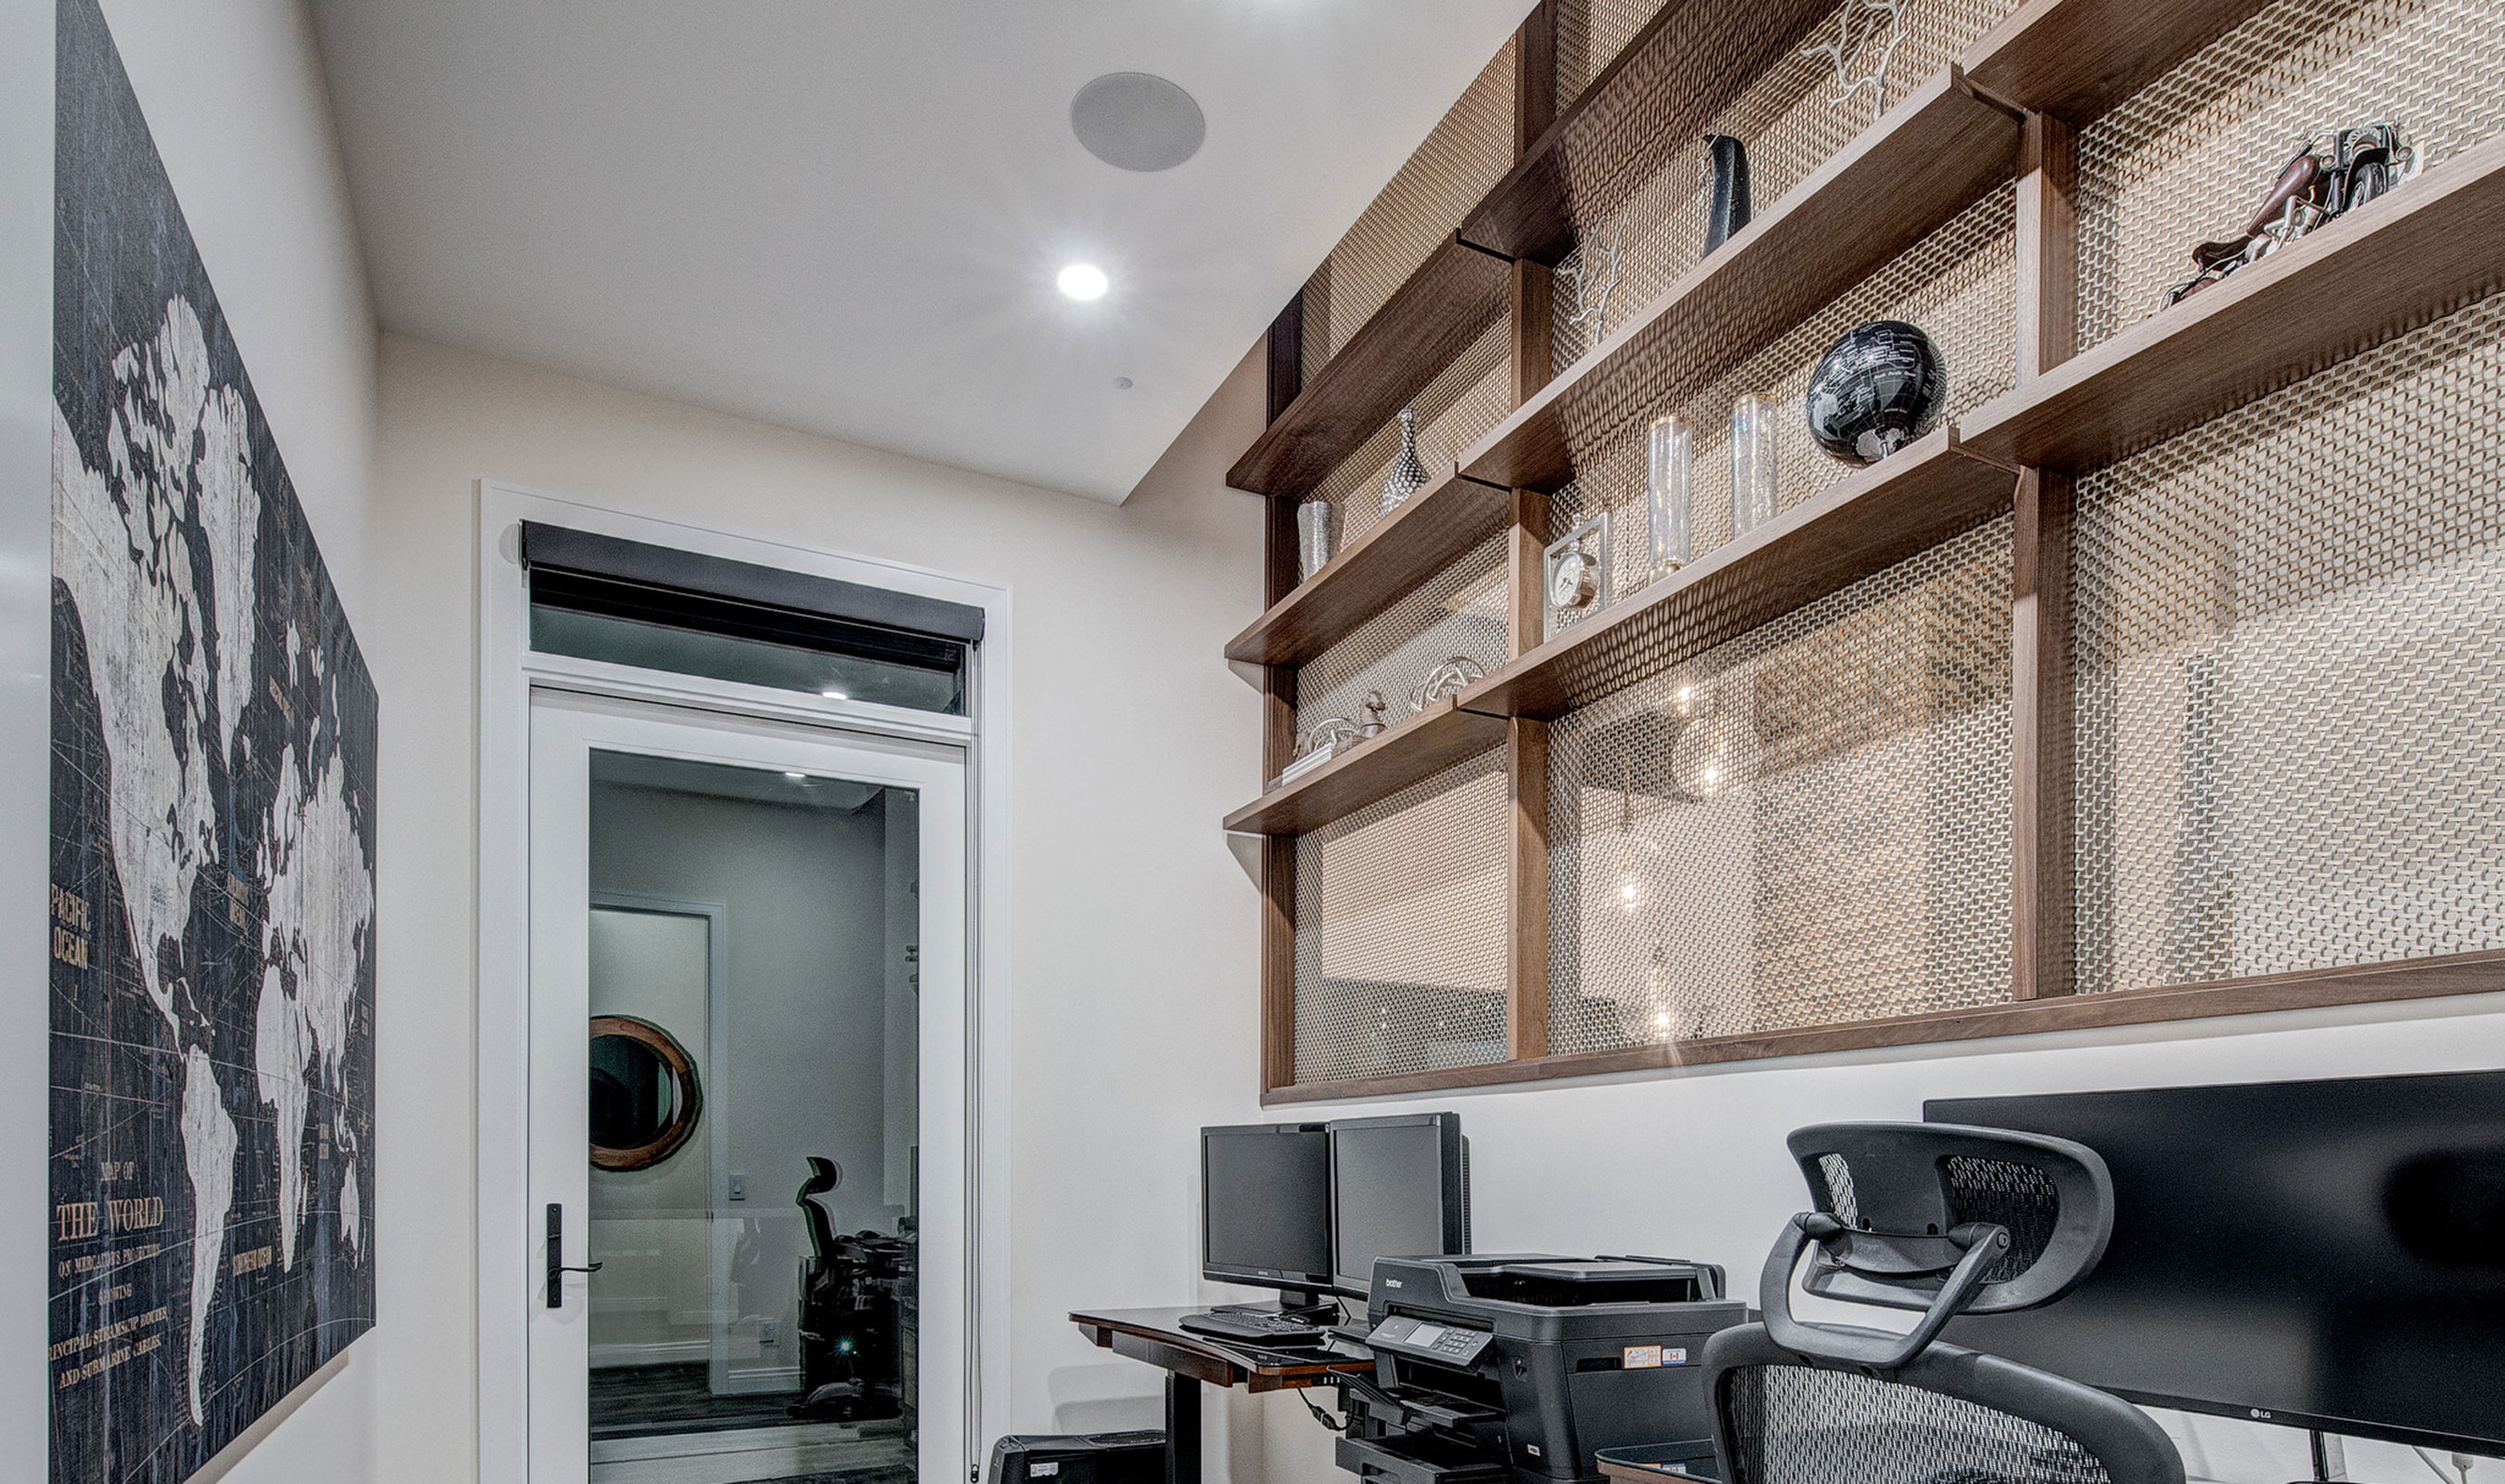 The office in the Willow Park Showhome utilizes Banker Wire's M22-83 woven wire mesh pattern in Stainless Steel and Brass.